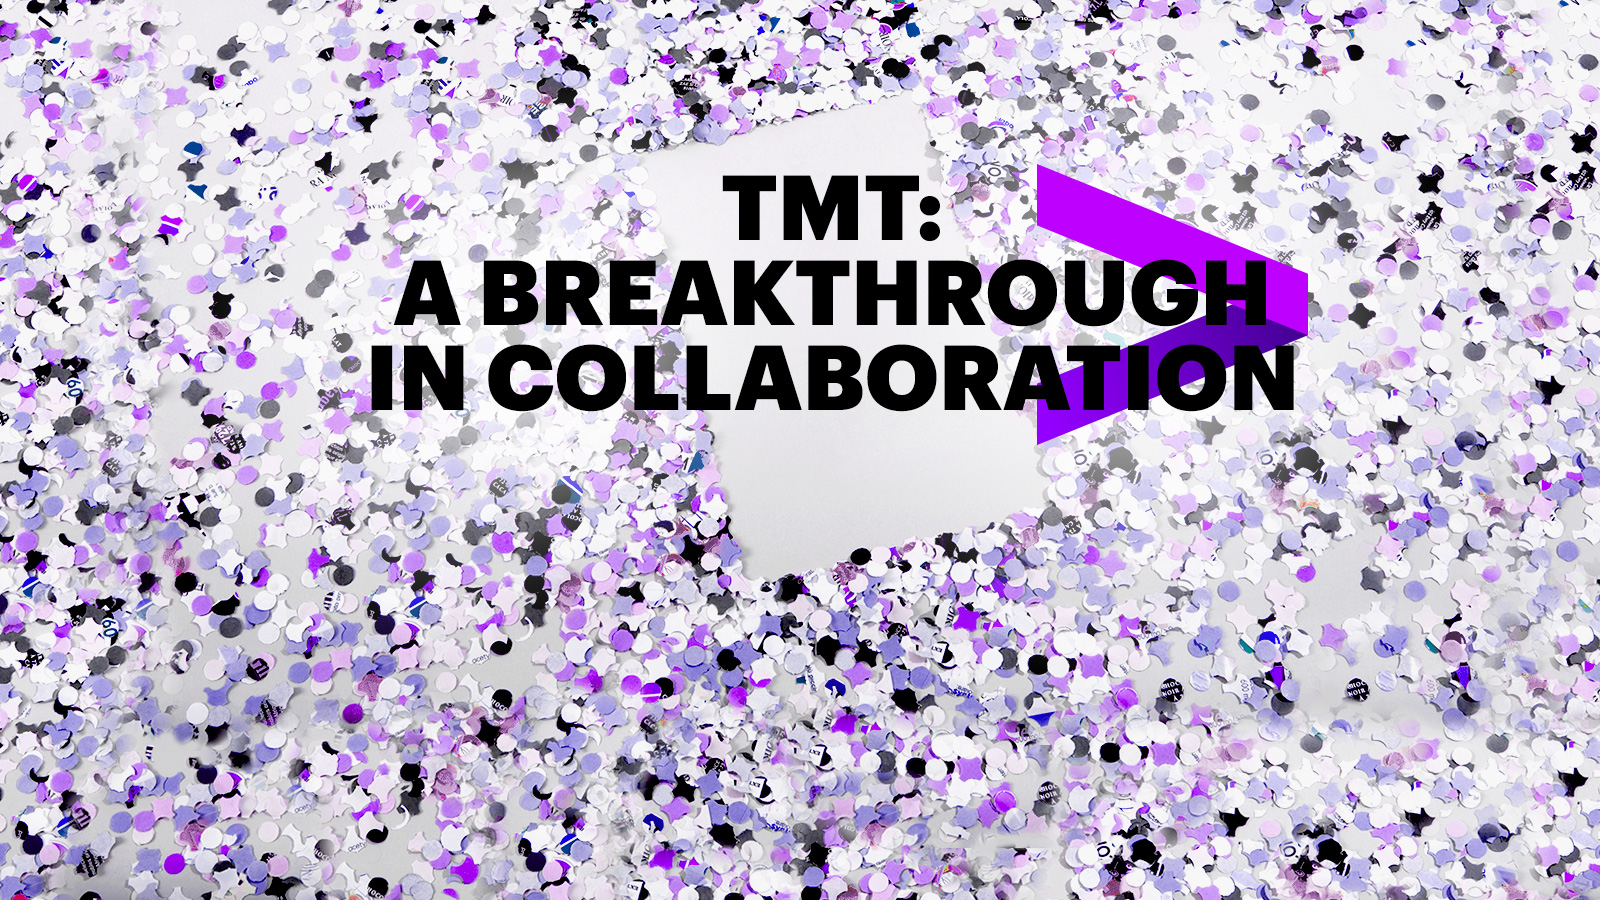 TMT: A breakthrough in Collaboration